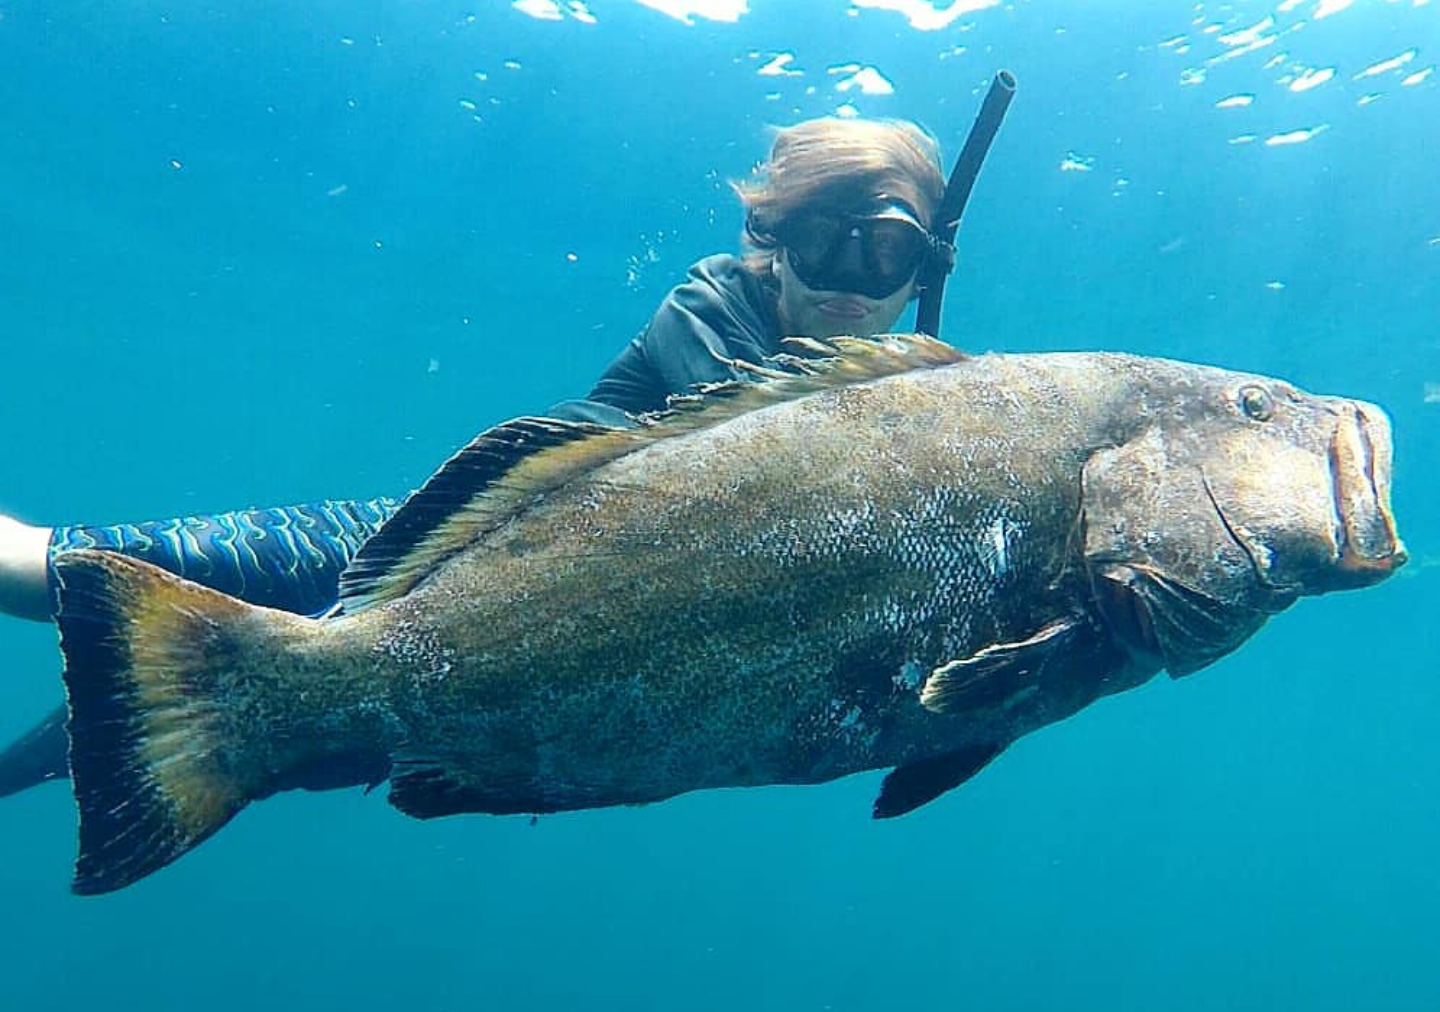 Polespear, Black Grouper, Headhunter Spearfishing, Spearfishing, Freediving,